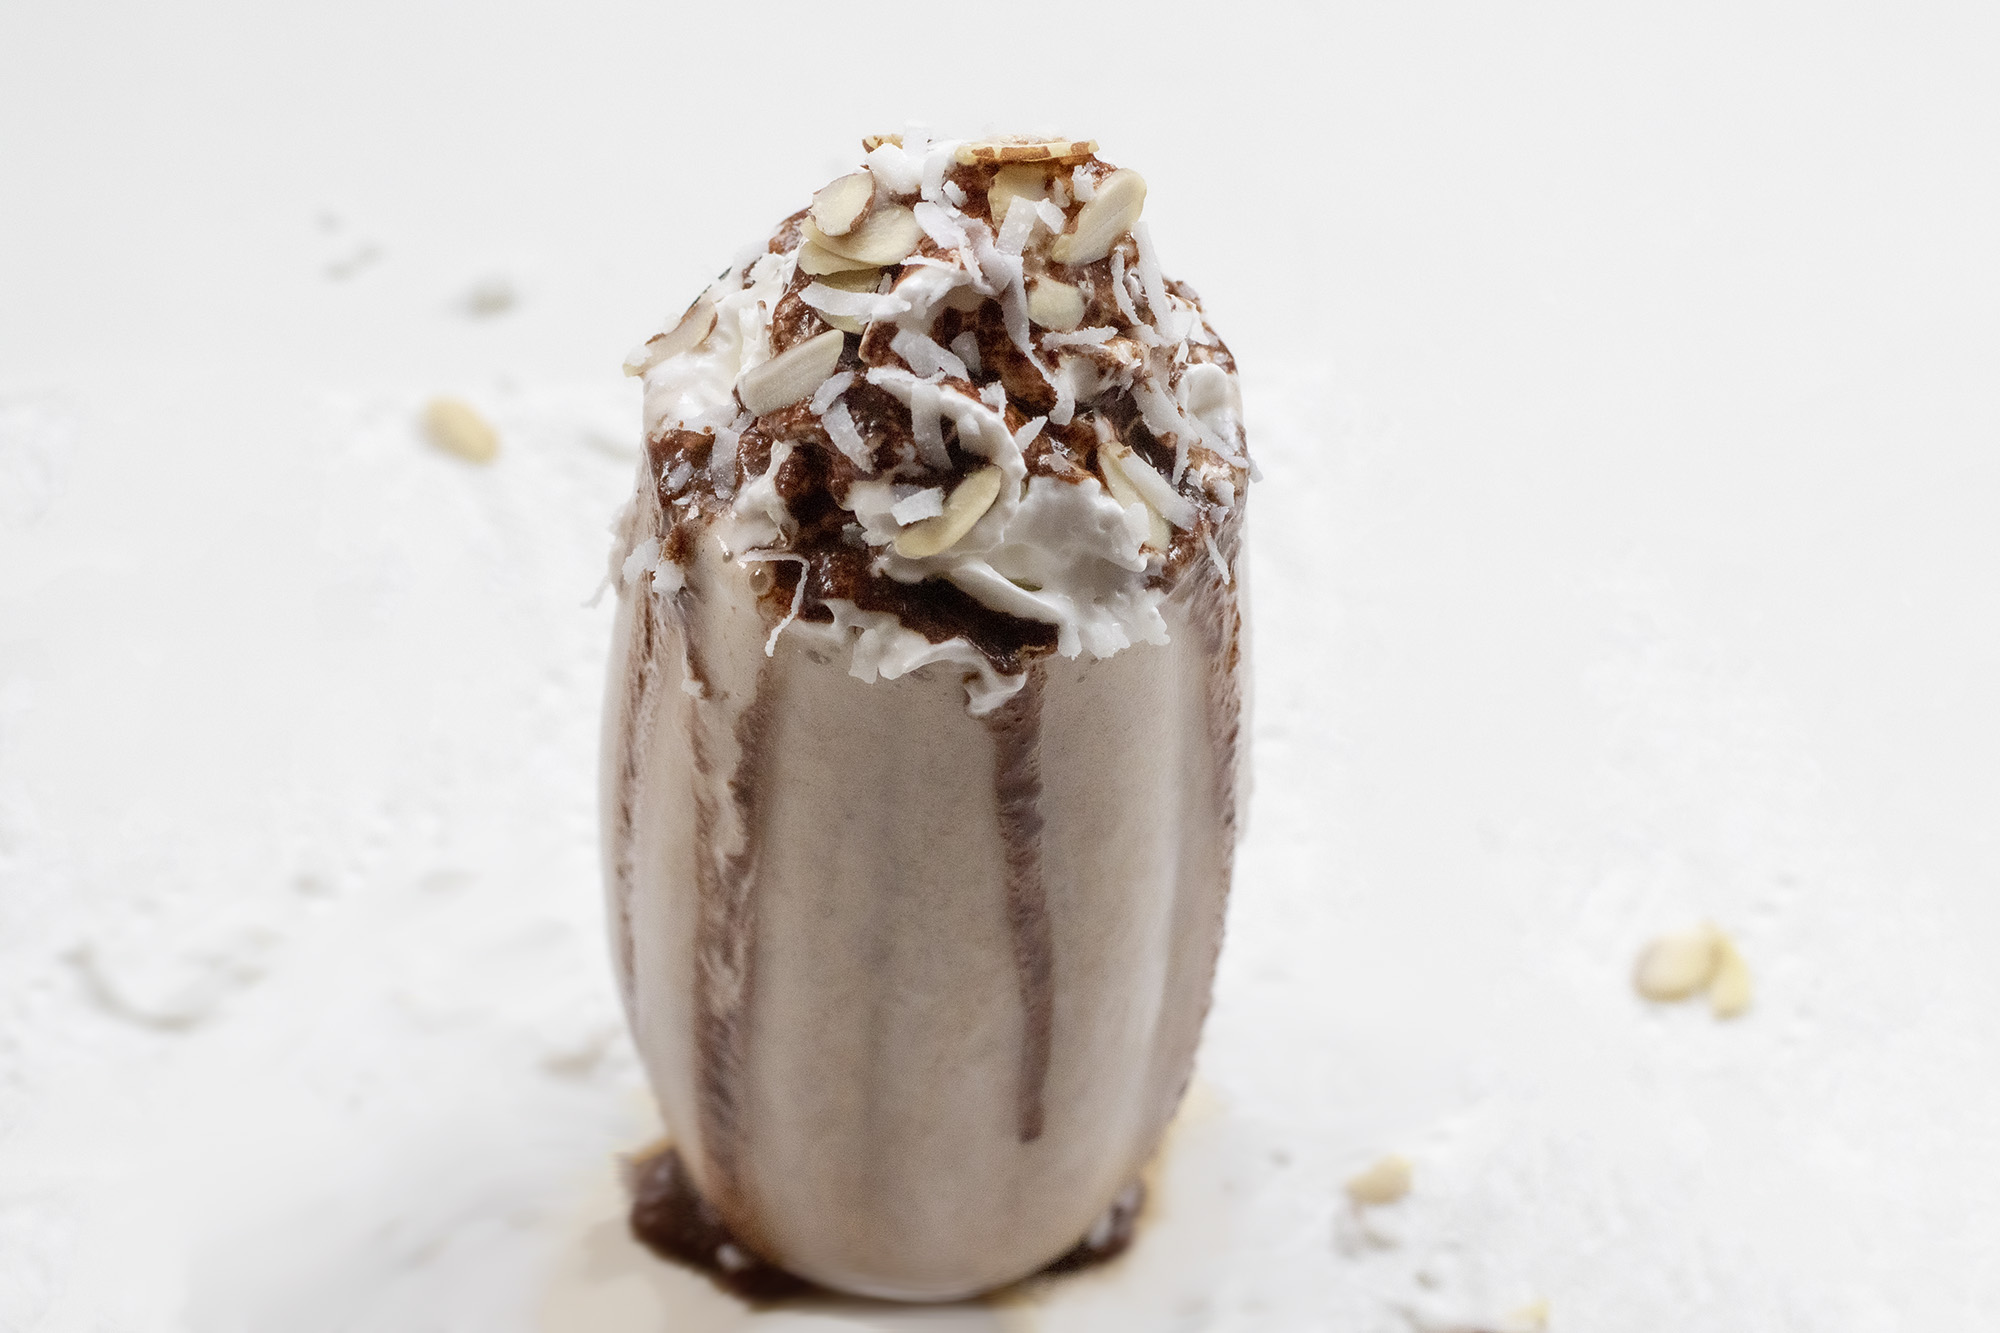 Chocolate Milkshake with whipped topping, sliced almonds, and shredded coconut on a white background.